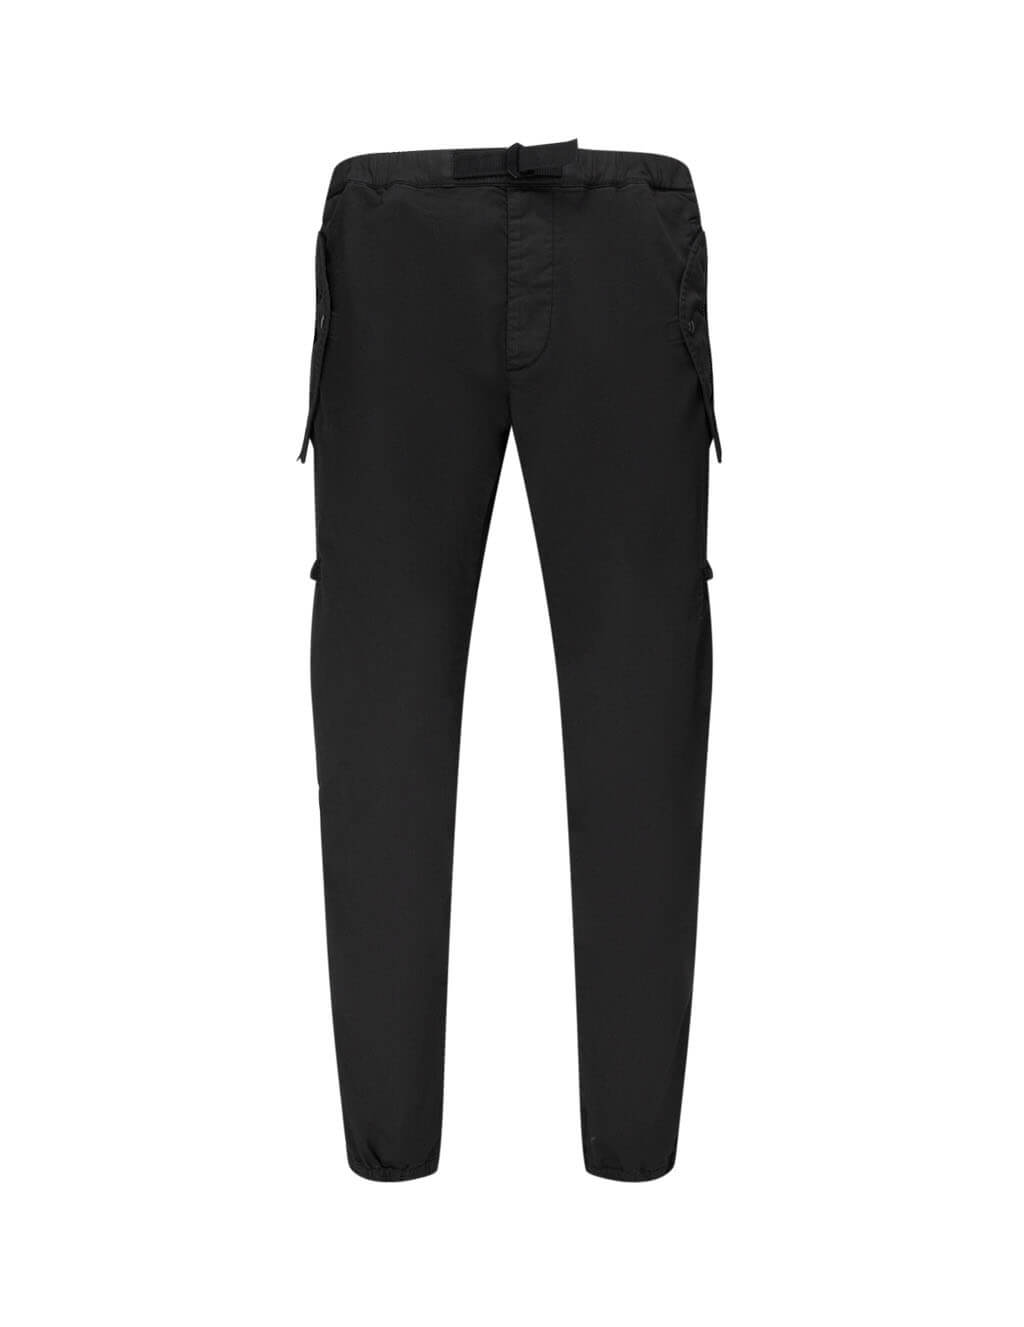 Moncler Men's Black Athletic Trousers 0912A7490057158999